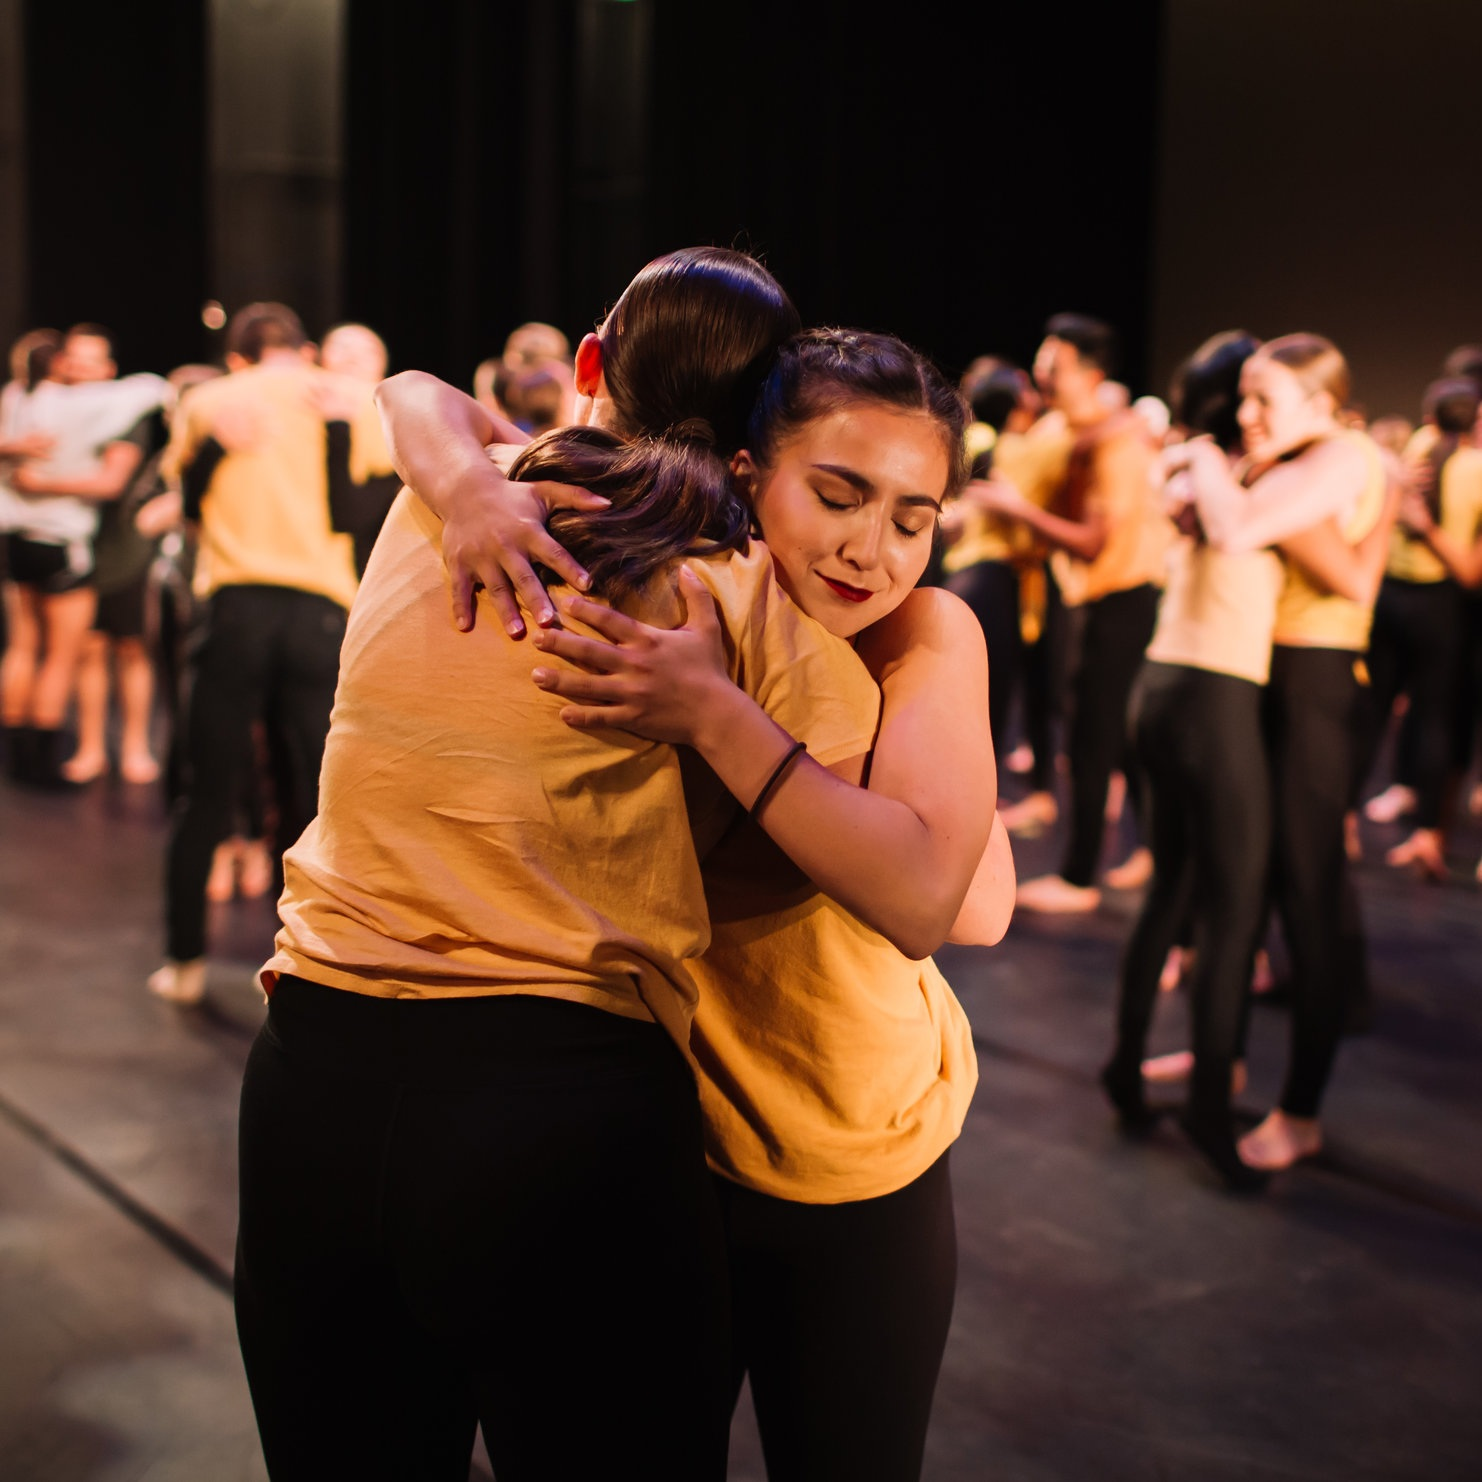 2018 Participants hugging on stage before the performance. Photo © Emily Duncan